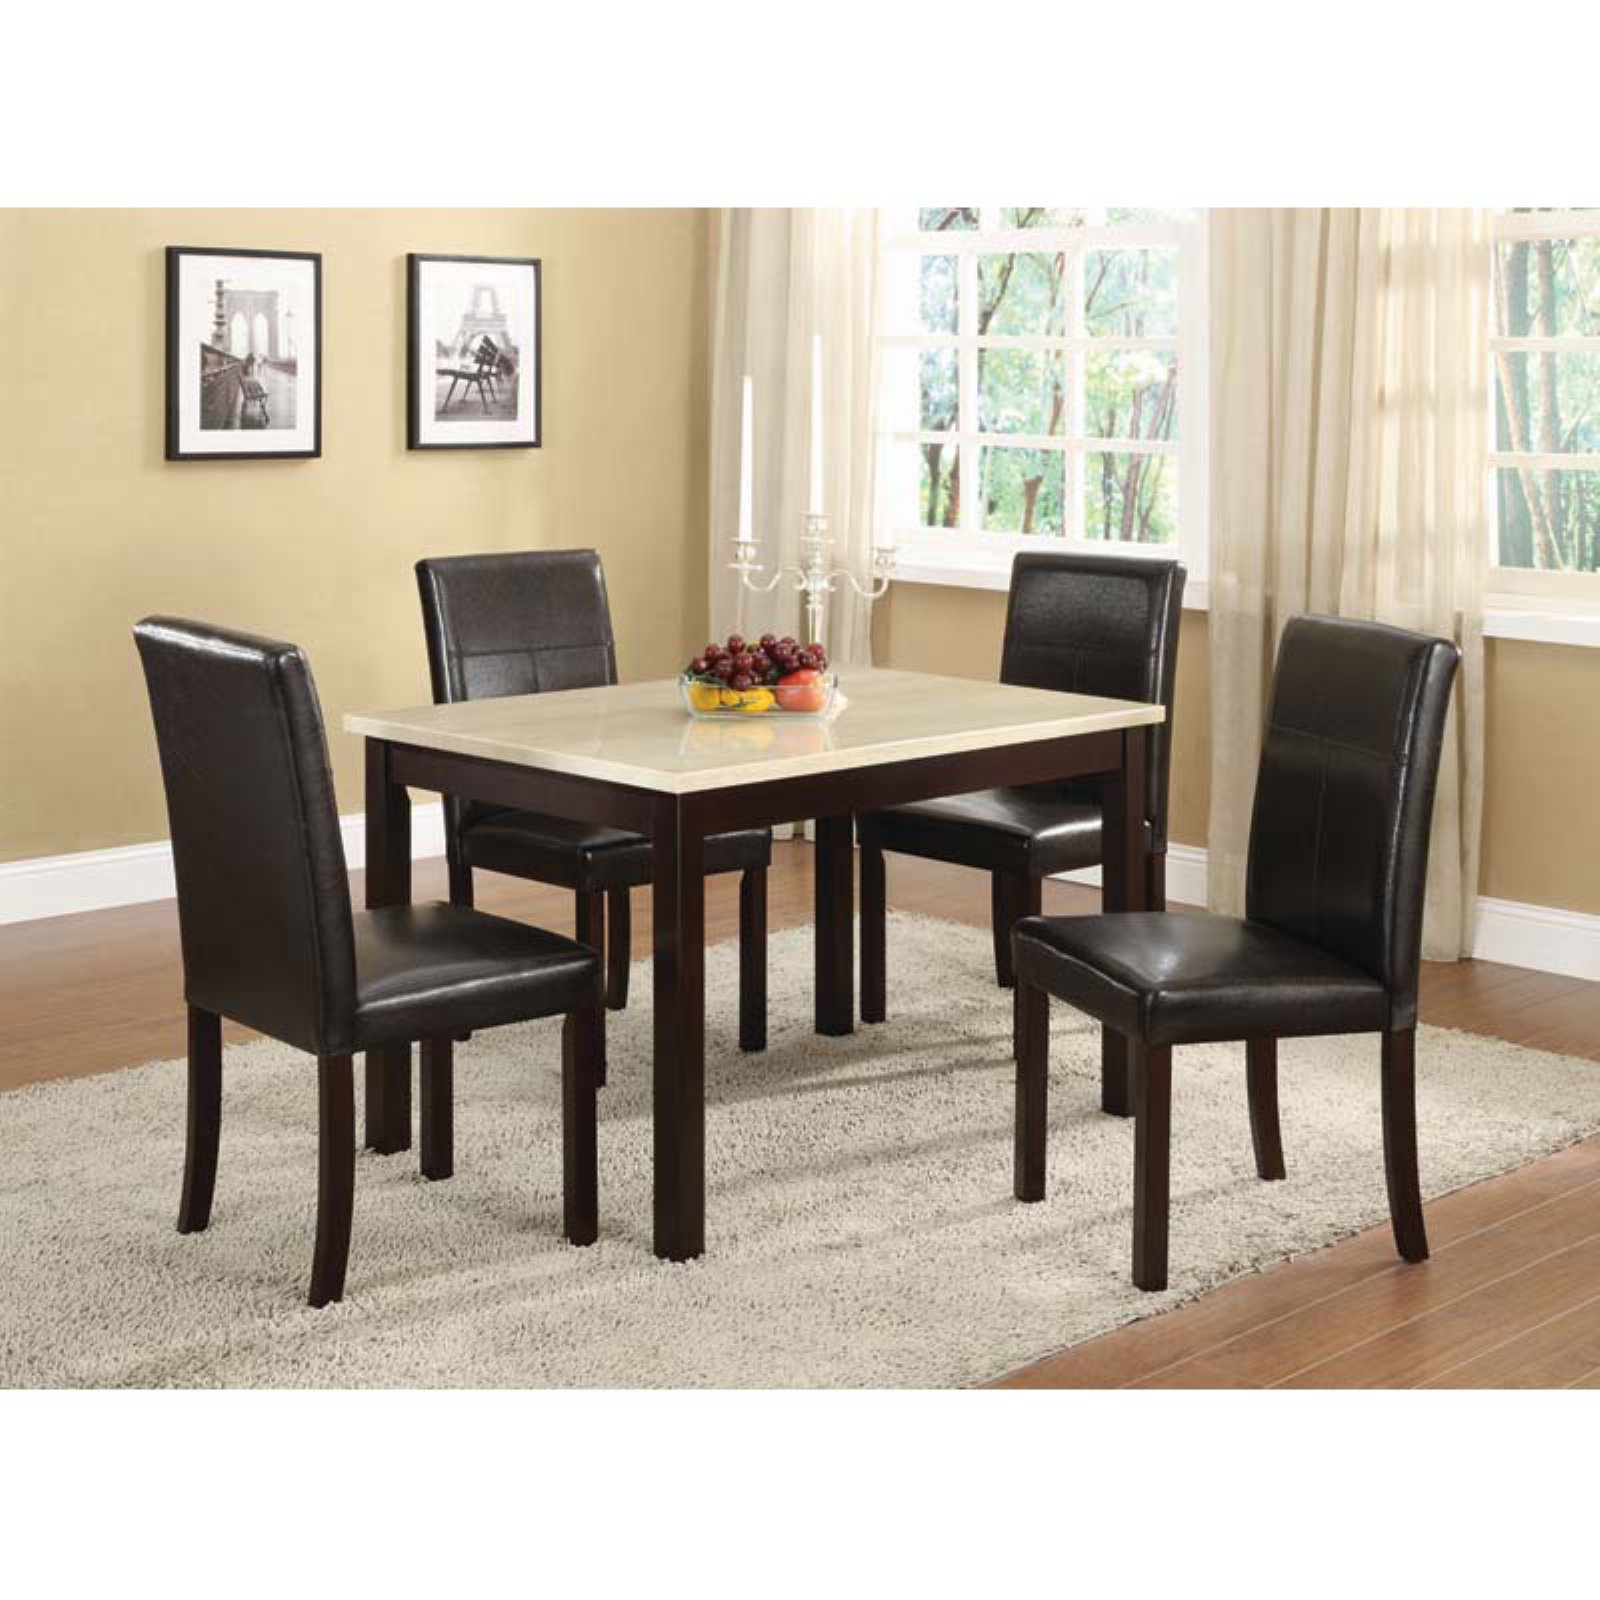 K & B Furniture Laminate Marble Top Table with Wooden Legs - Traver Tine / Espresso